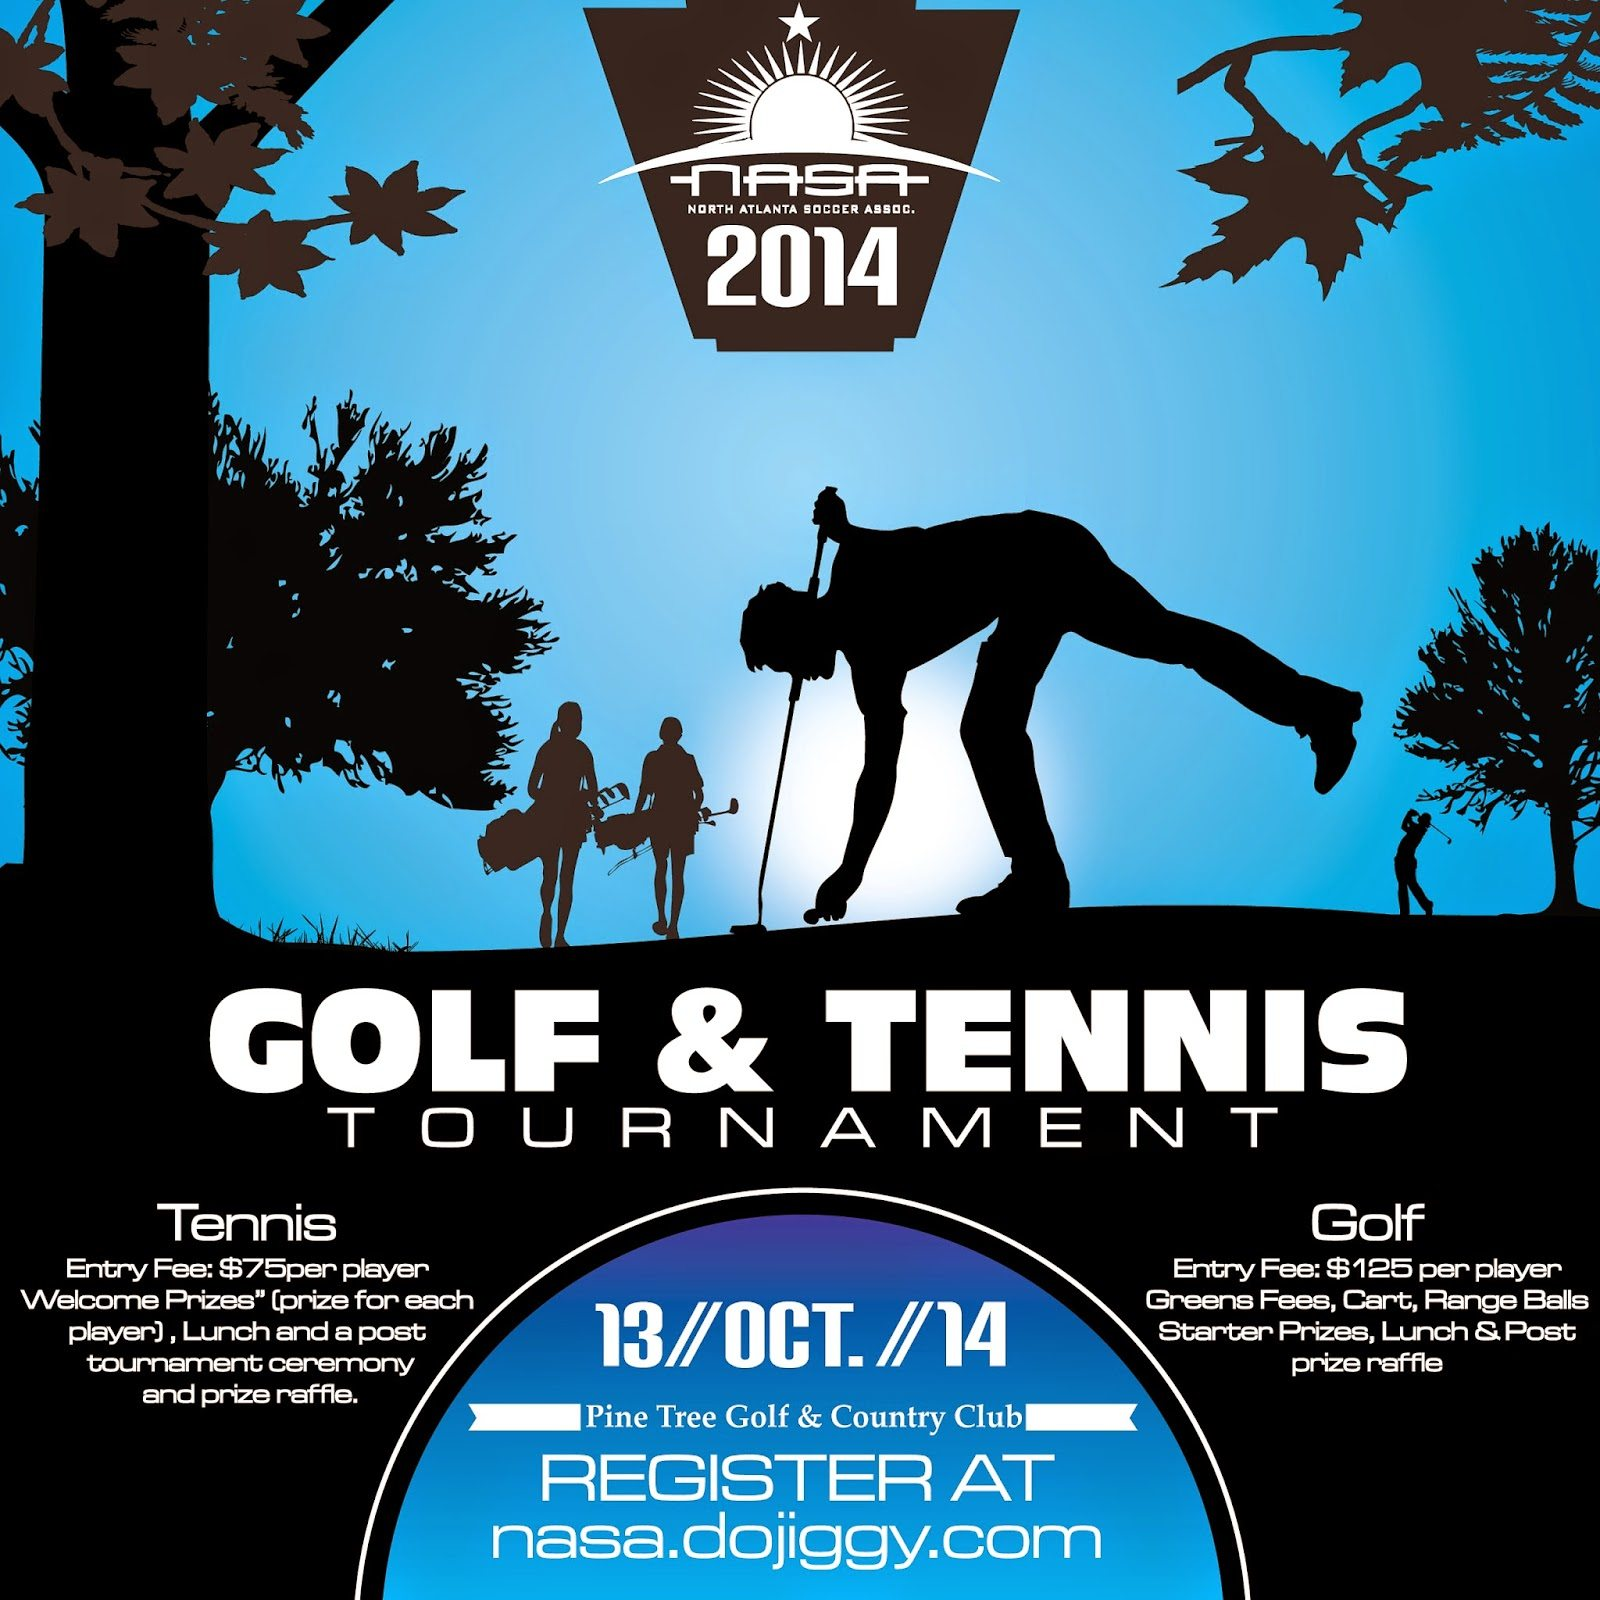 NASA2014GolfFlyerBlue EVENT ALERT: NORTH ATLANTA SOCCER ASSOCIATION WILL HOLD IT'S ANNUAL GOLF & TENNIS TOURNAMENT AT THE PINE TREE GOLF & COUNTRY CLUB